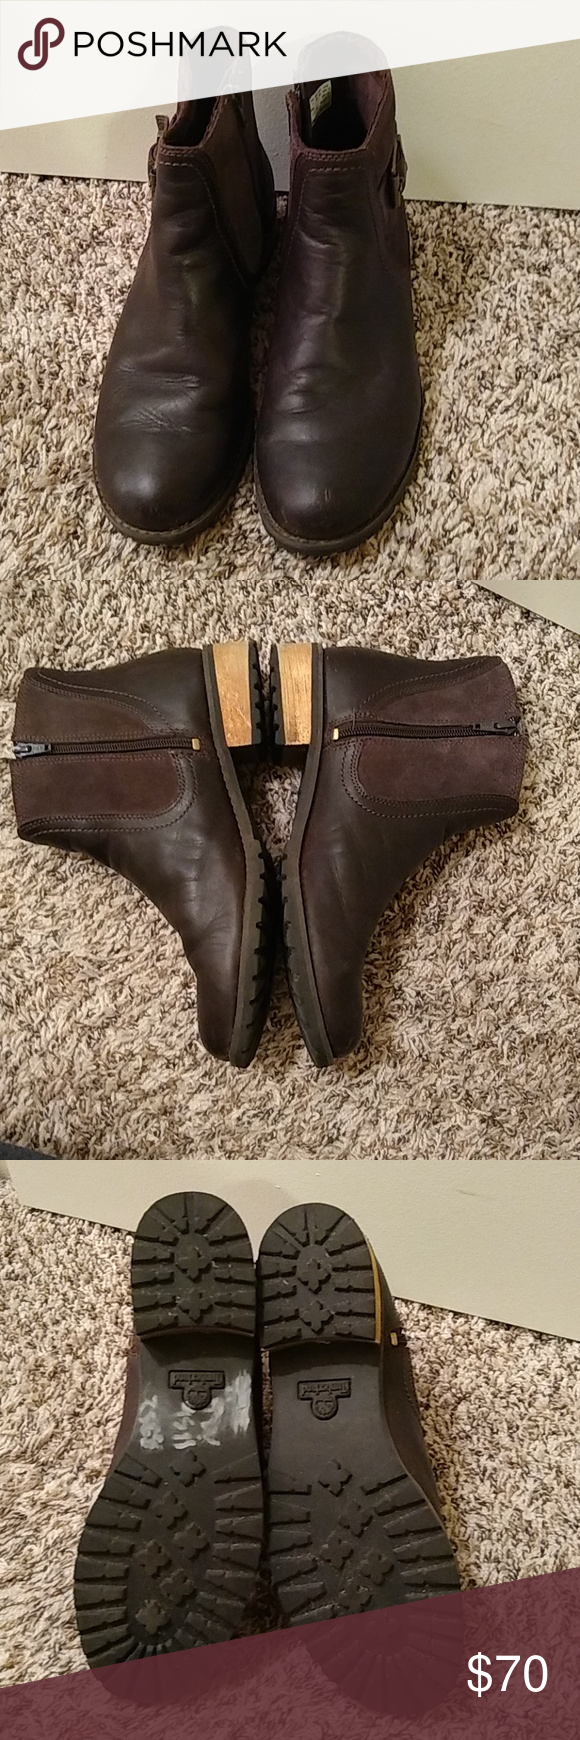 new arrive a few days away the best attitude Brown Timberland Bethel ankle boot size 9 Great Timberland ...